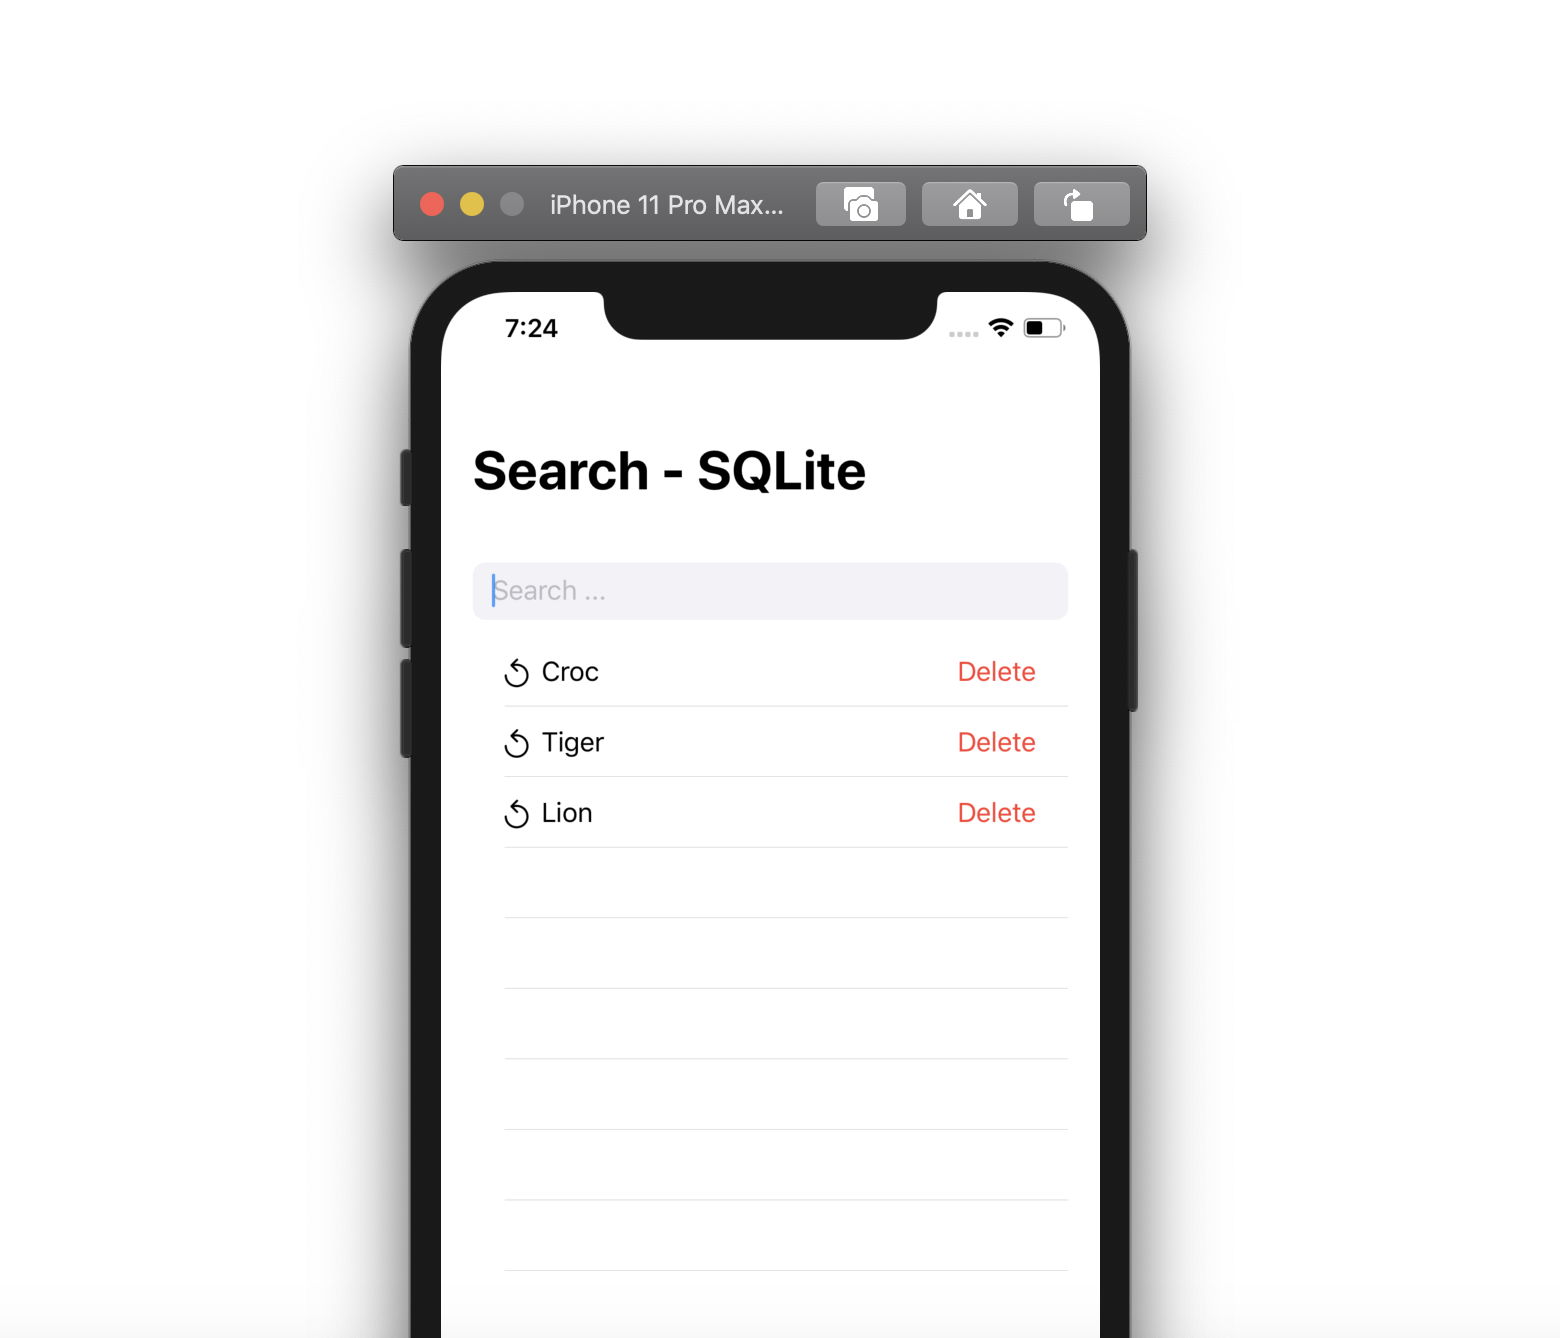 Search bar with history - Swift UI, SQLite